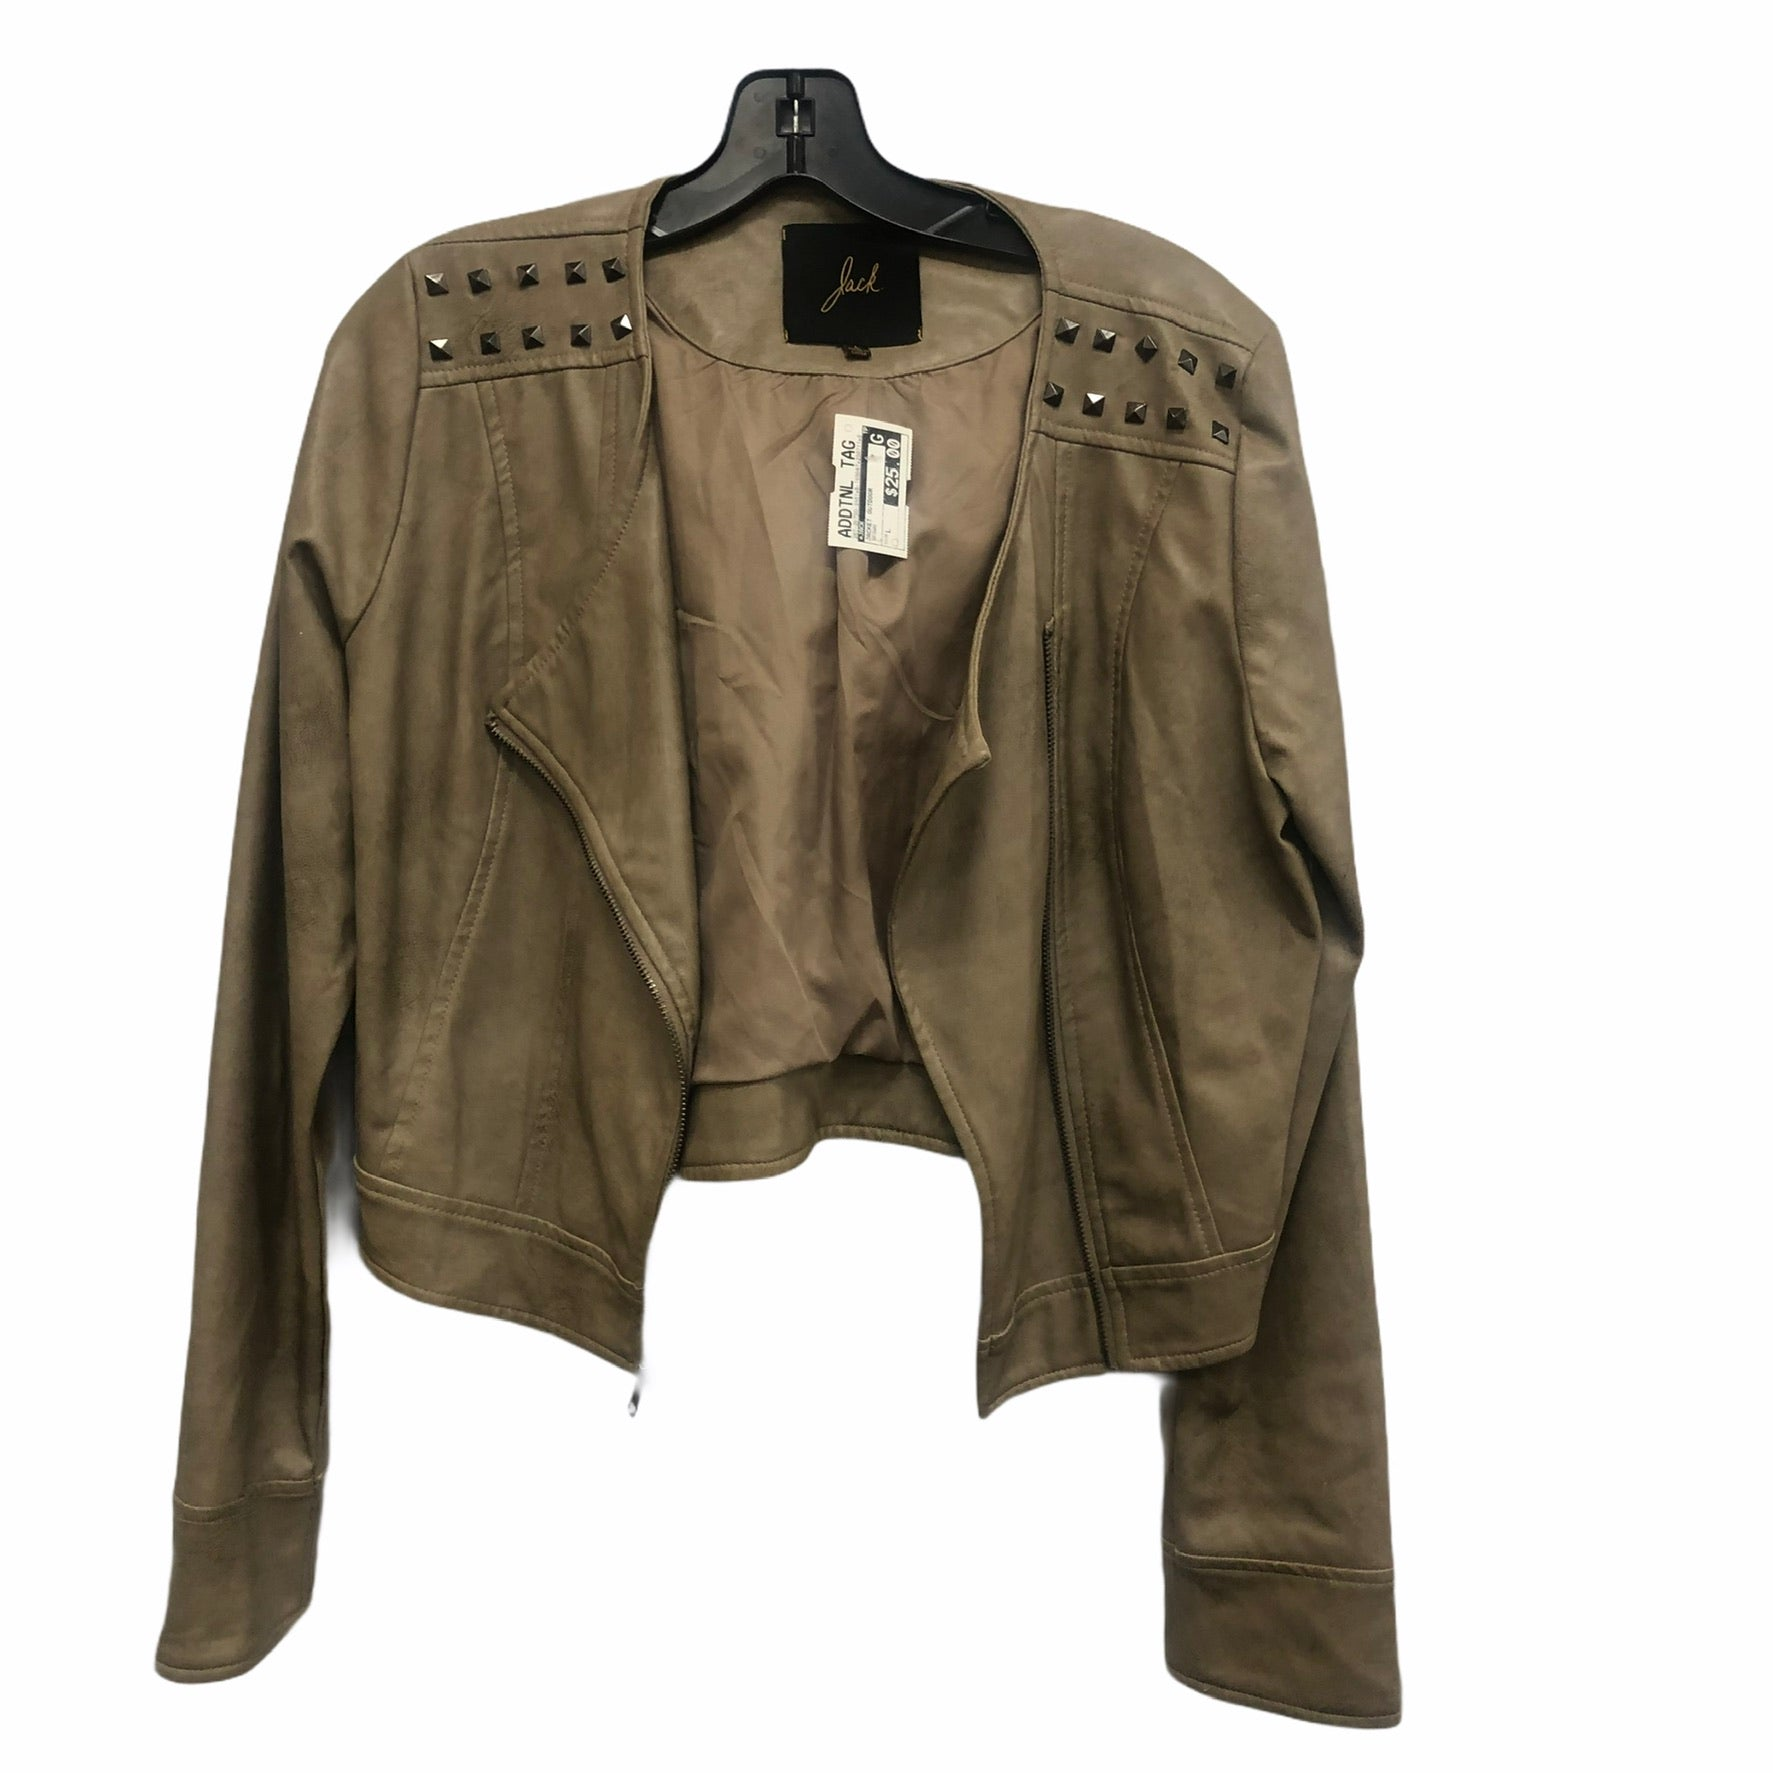 Primary Photo - brand: jack , style: jacket outdoor , color: brown , size: l , sku: 267-26790-3461